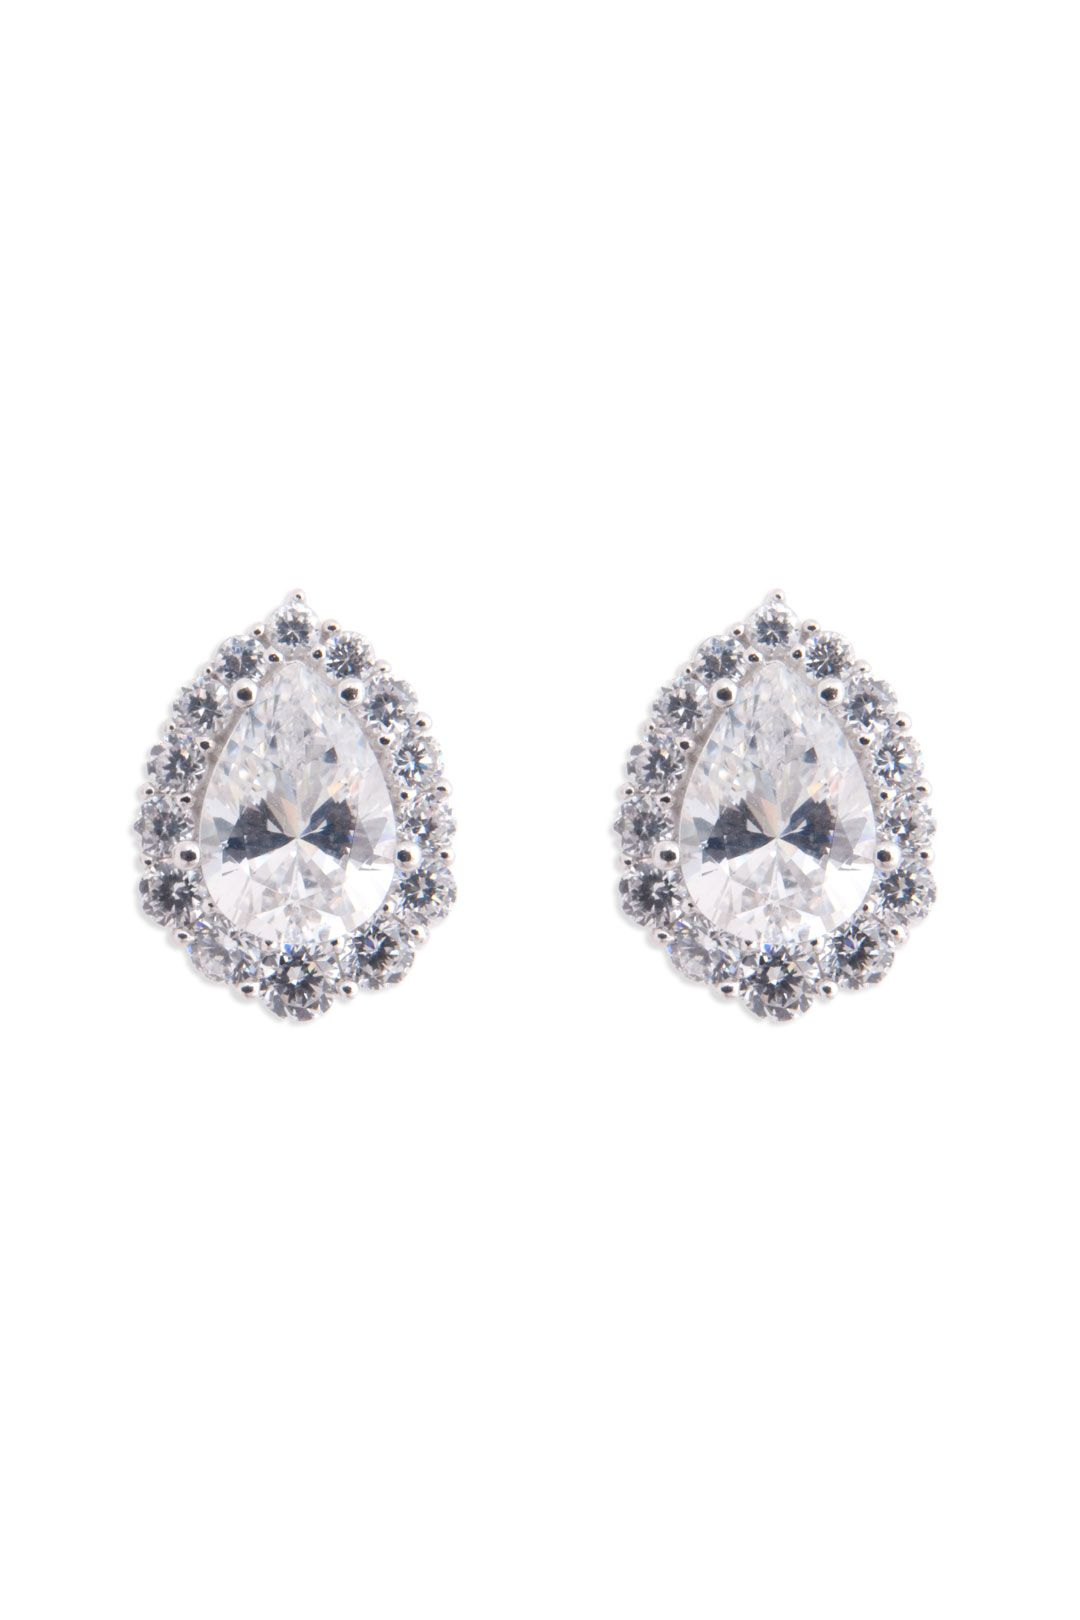 Crislu Teardrop Sparkle Earrings Simple And Sophisticated These Sparkling Studs Help You To Shine